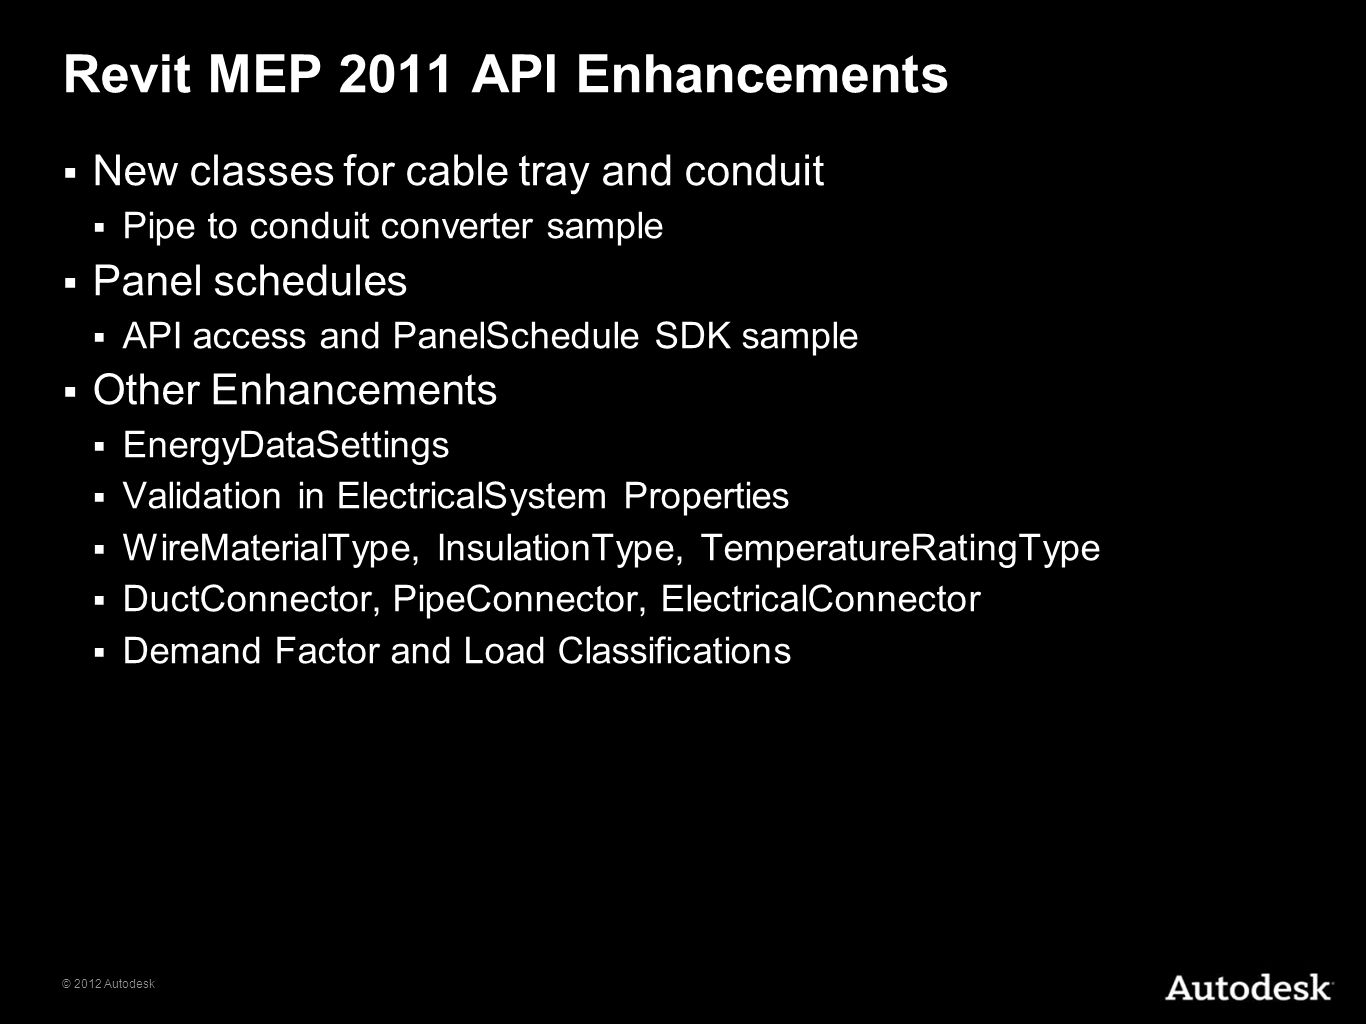 Revit MEP 2011 API Enhancements